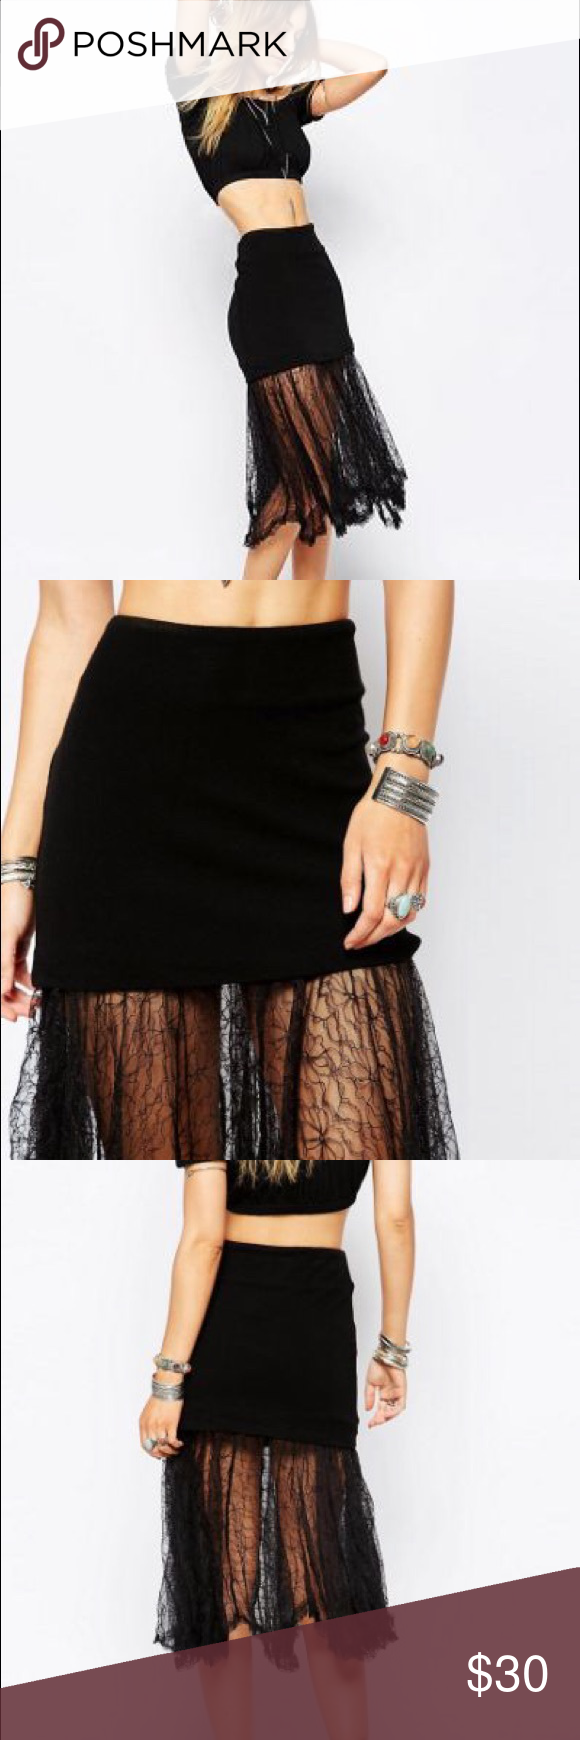 fb7568e736d0 NWT Free People Two for One [Knit & Lace] Skirt Free People two for ...